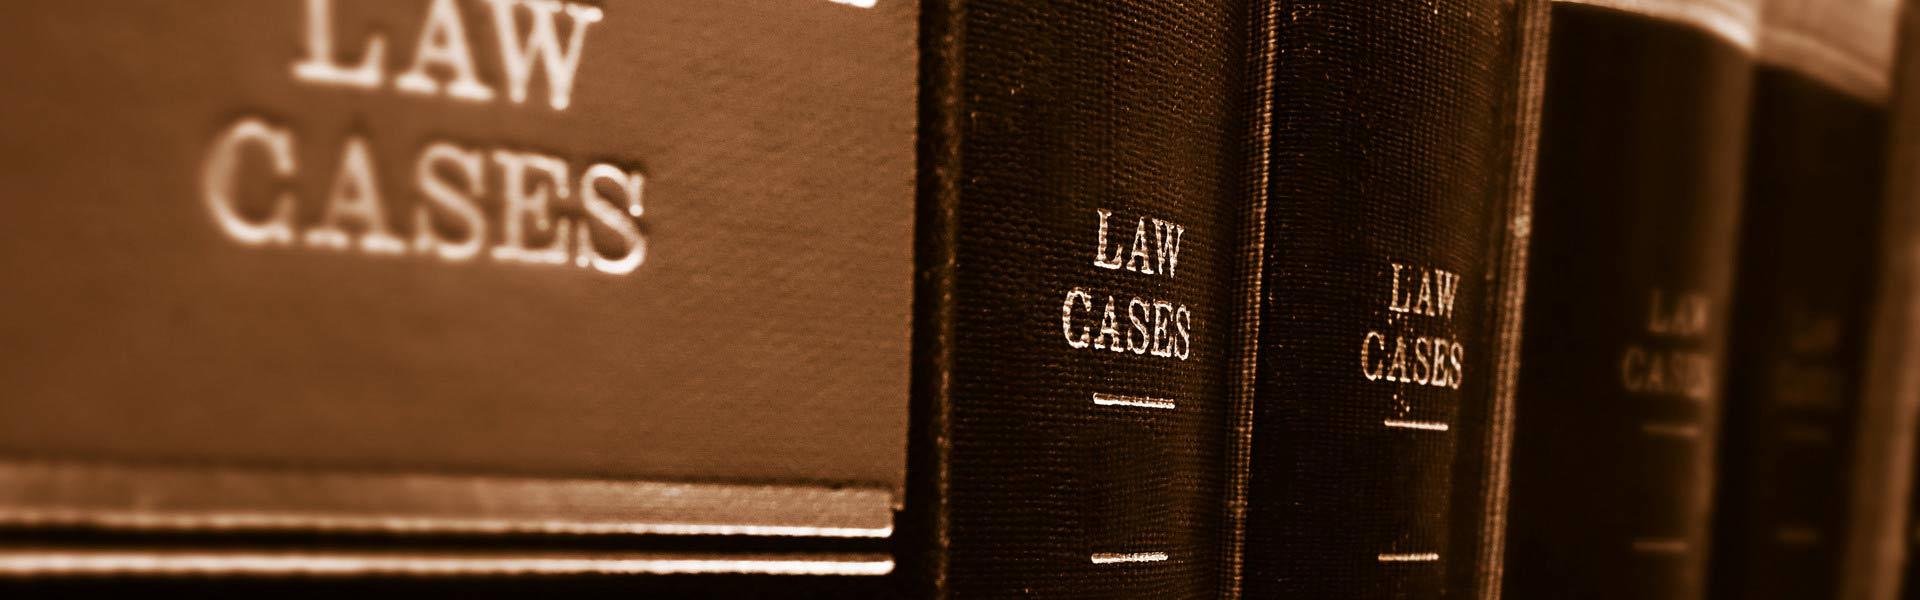 many books about law cases